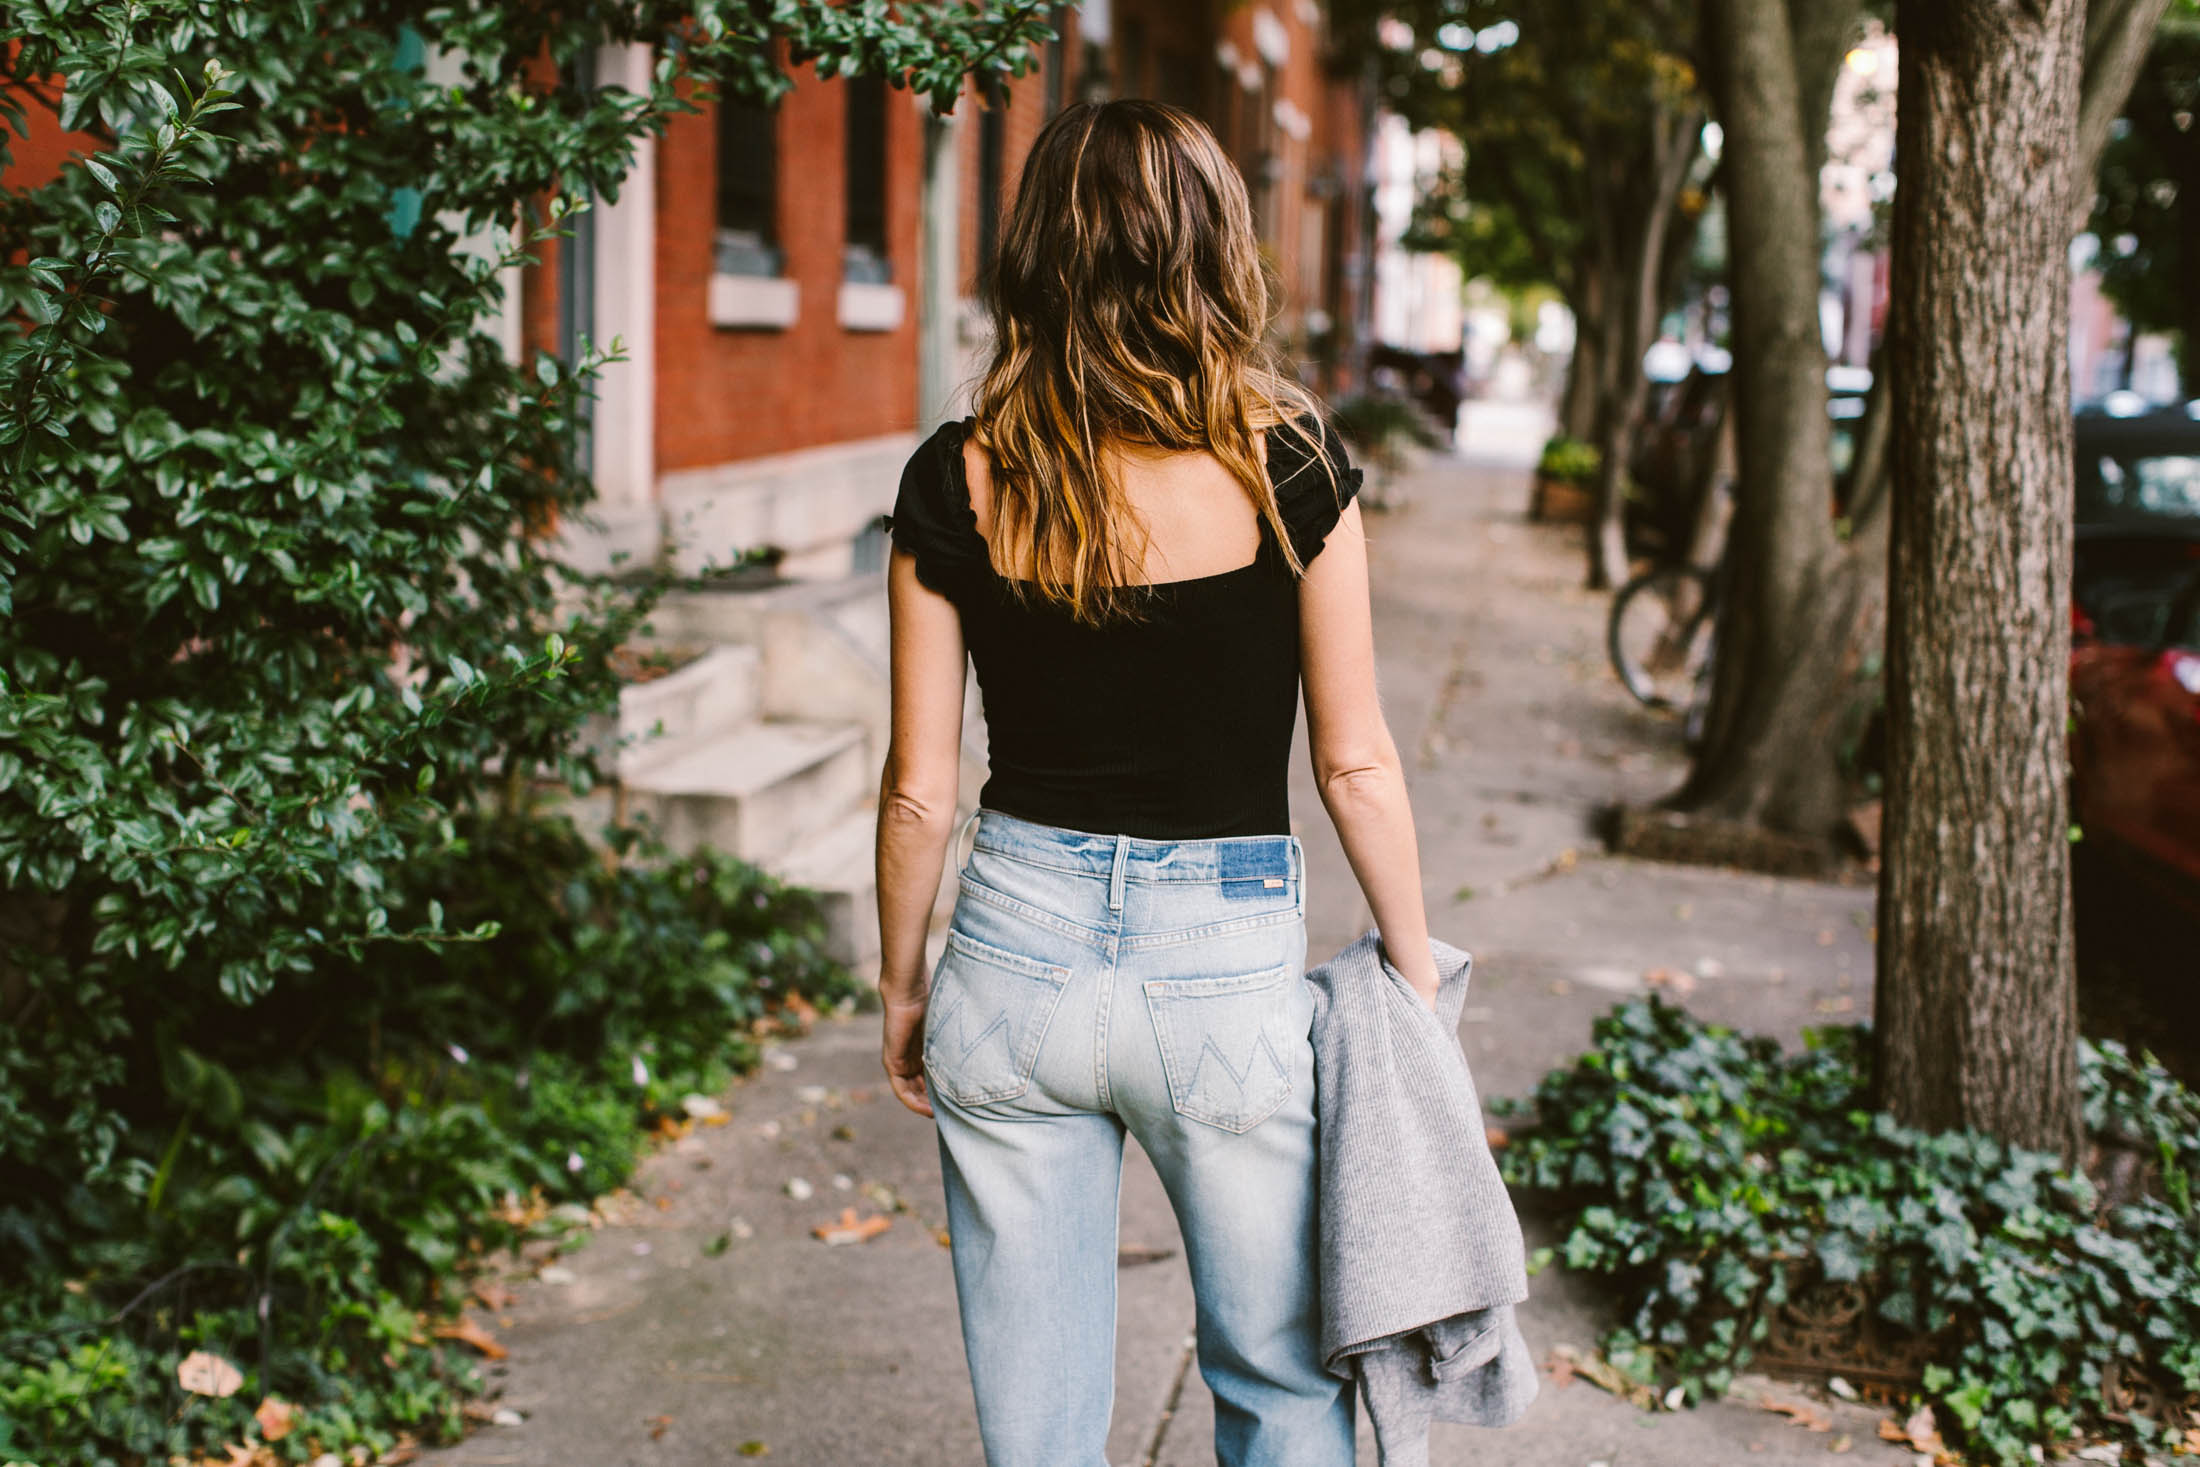 We're totally obsessed with this chic look created by a bodysuit & loose tomboyish jeans with a large cuff. Perfect for layering & dressing up or down.